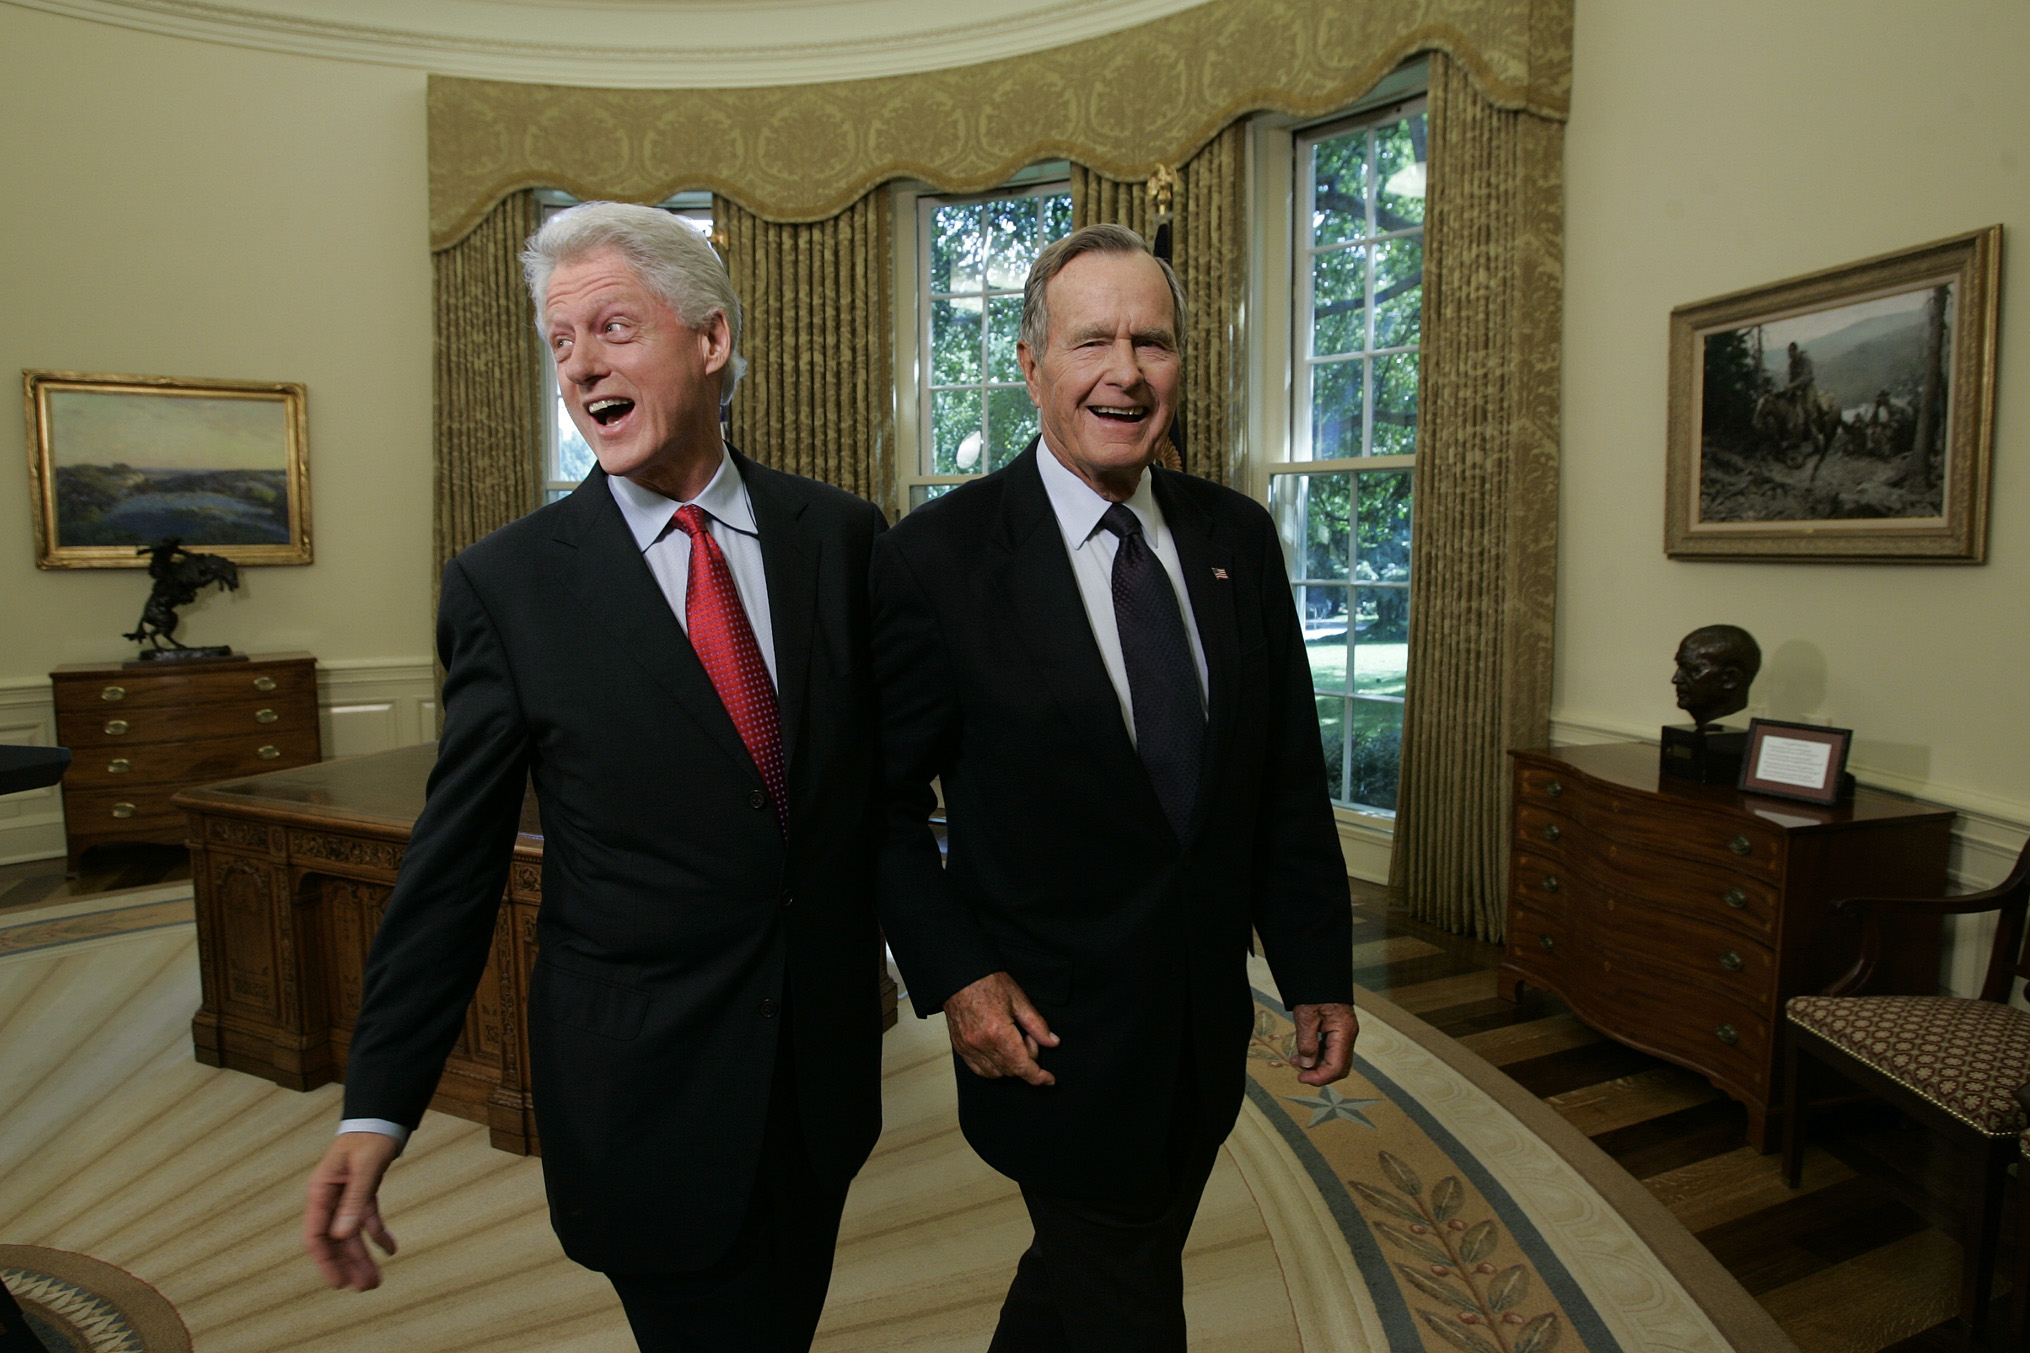 Bush with Clinton at the Oval Office in September 2005.